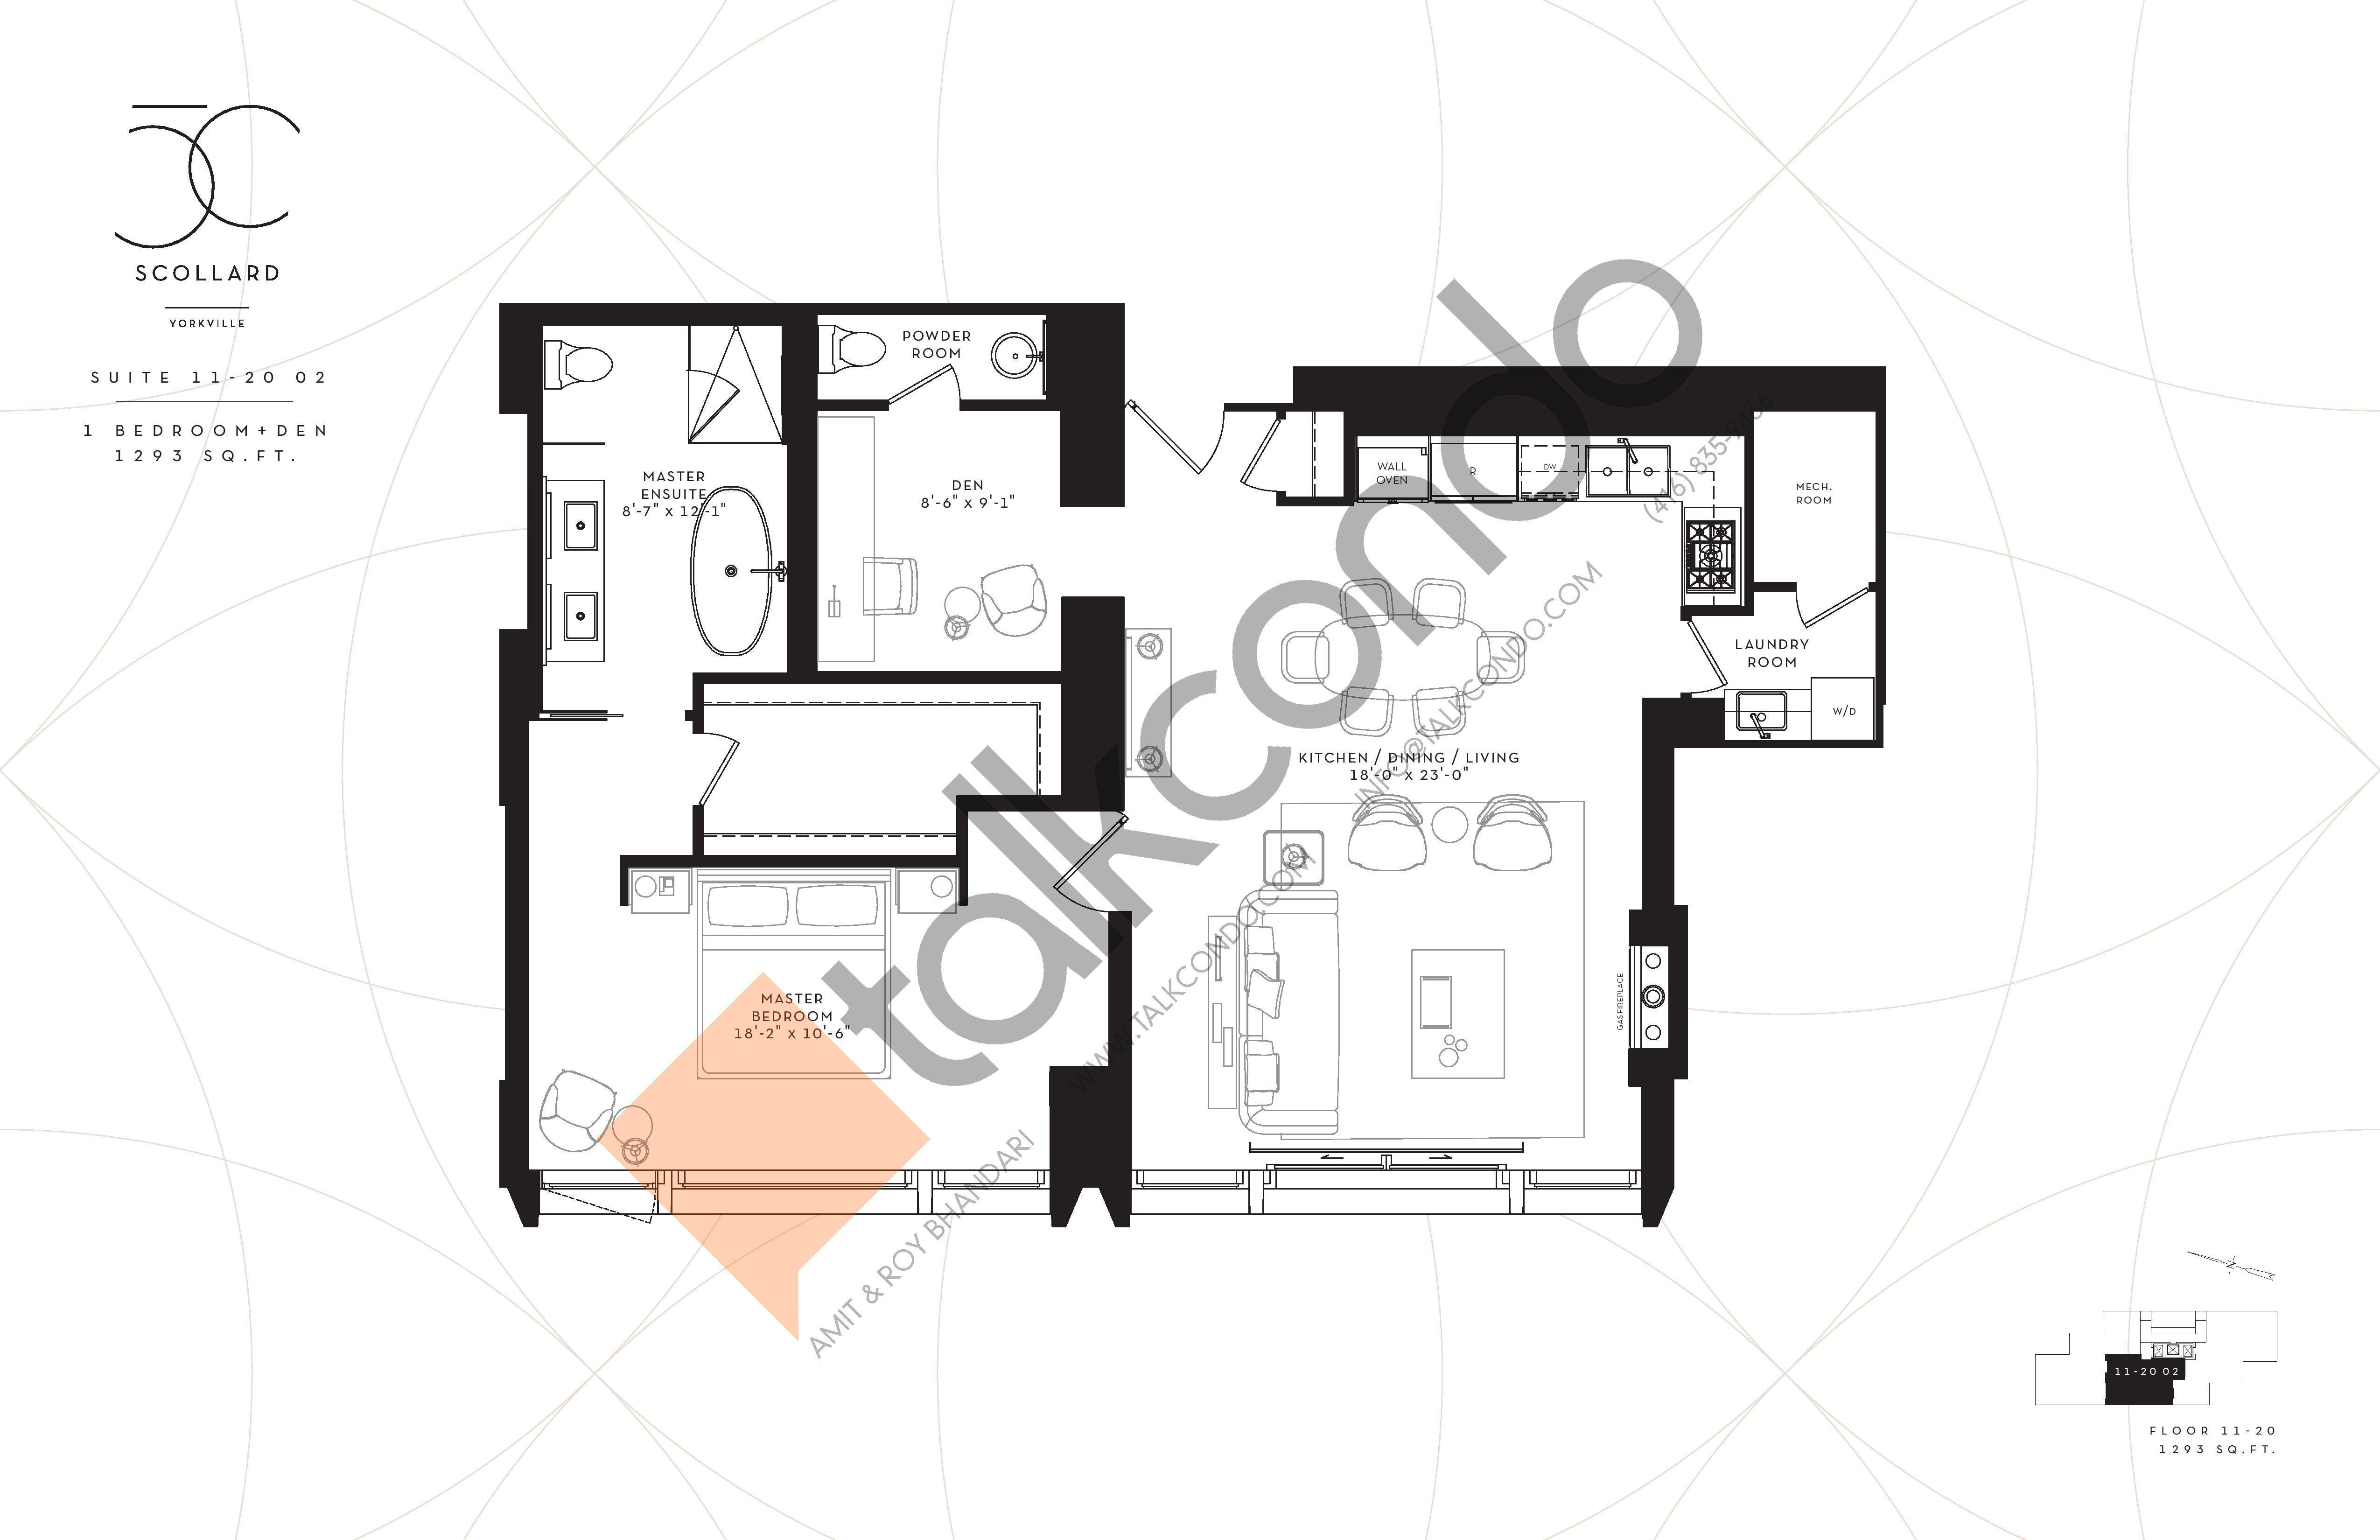 Suite 11-20 02 Floor Plan at Fifty Scollard Condos - 1293 sq.ft